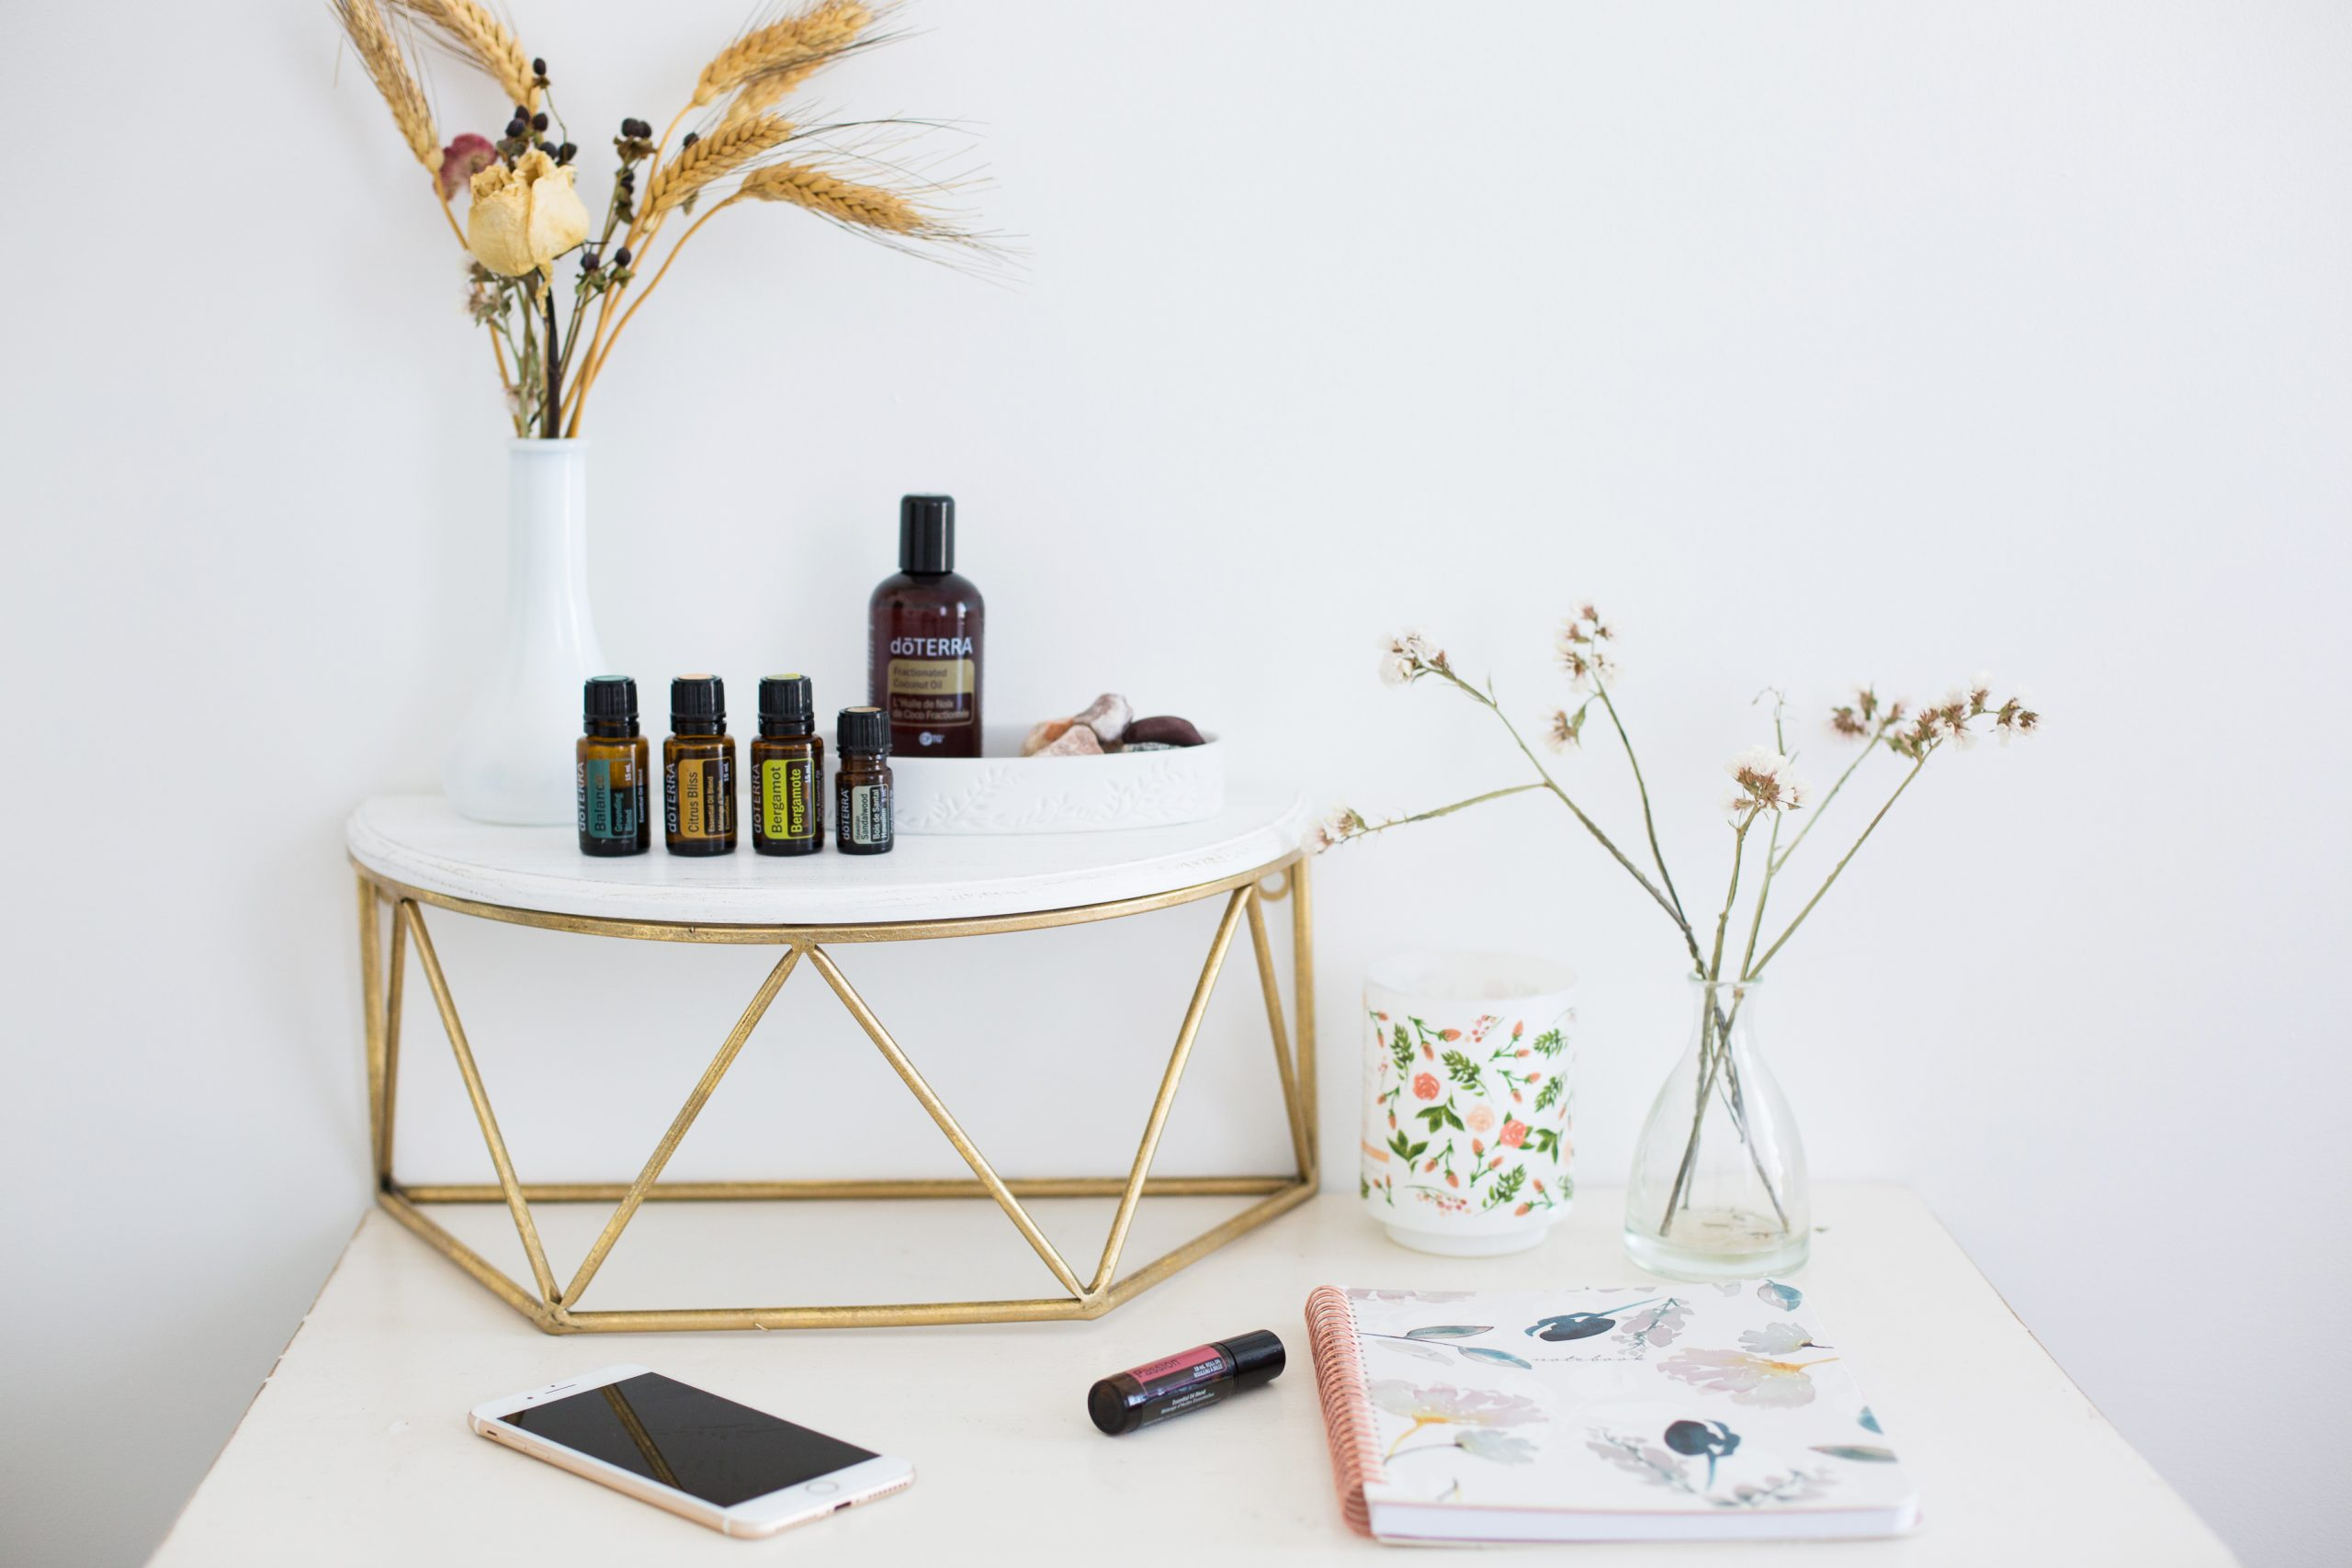 Table with essential oils, notebook and phone